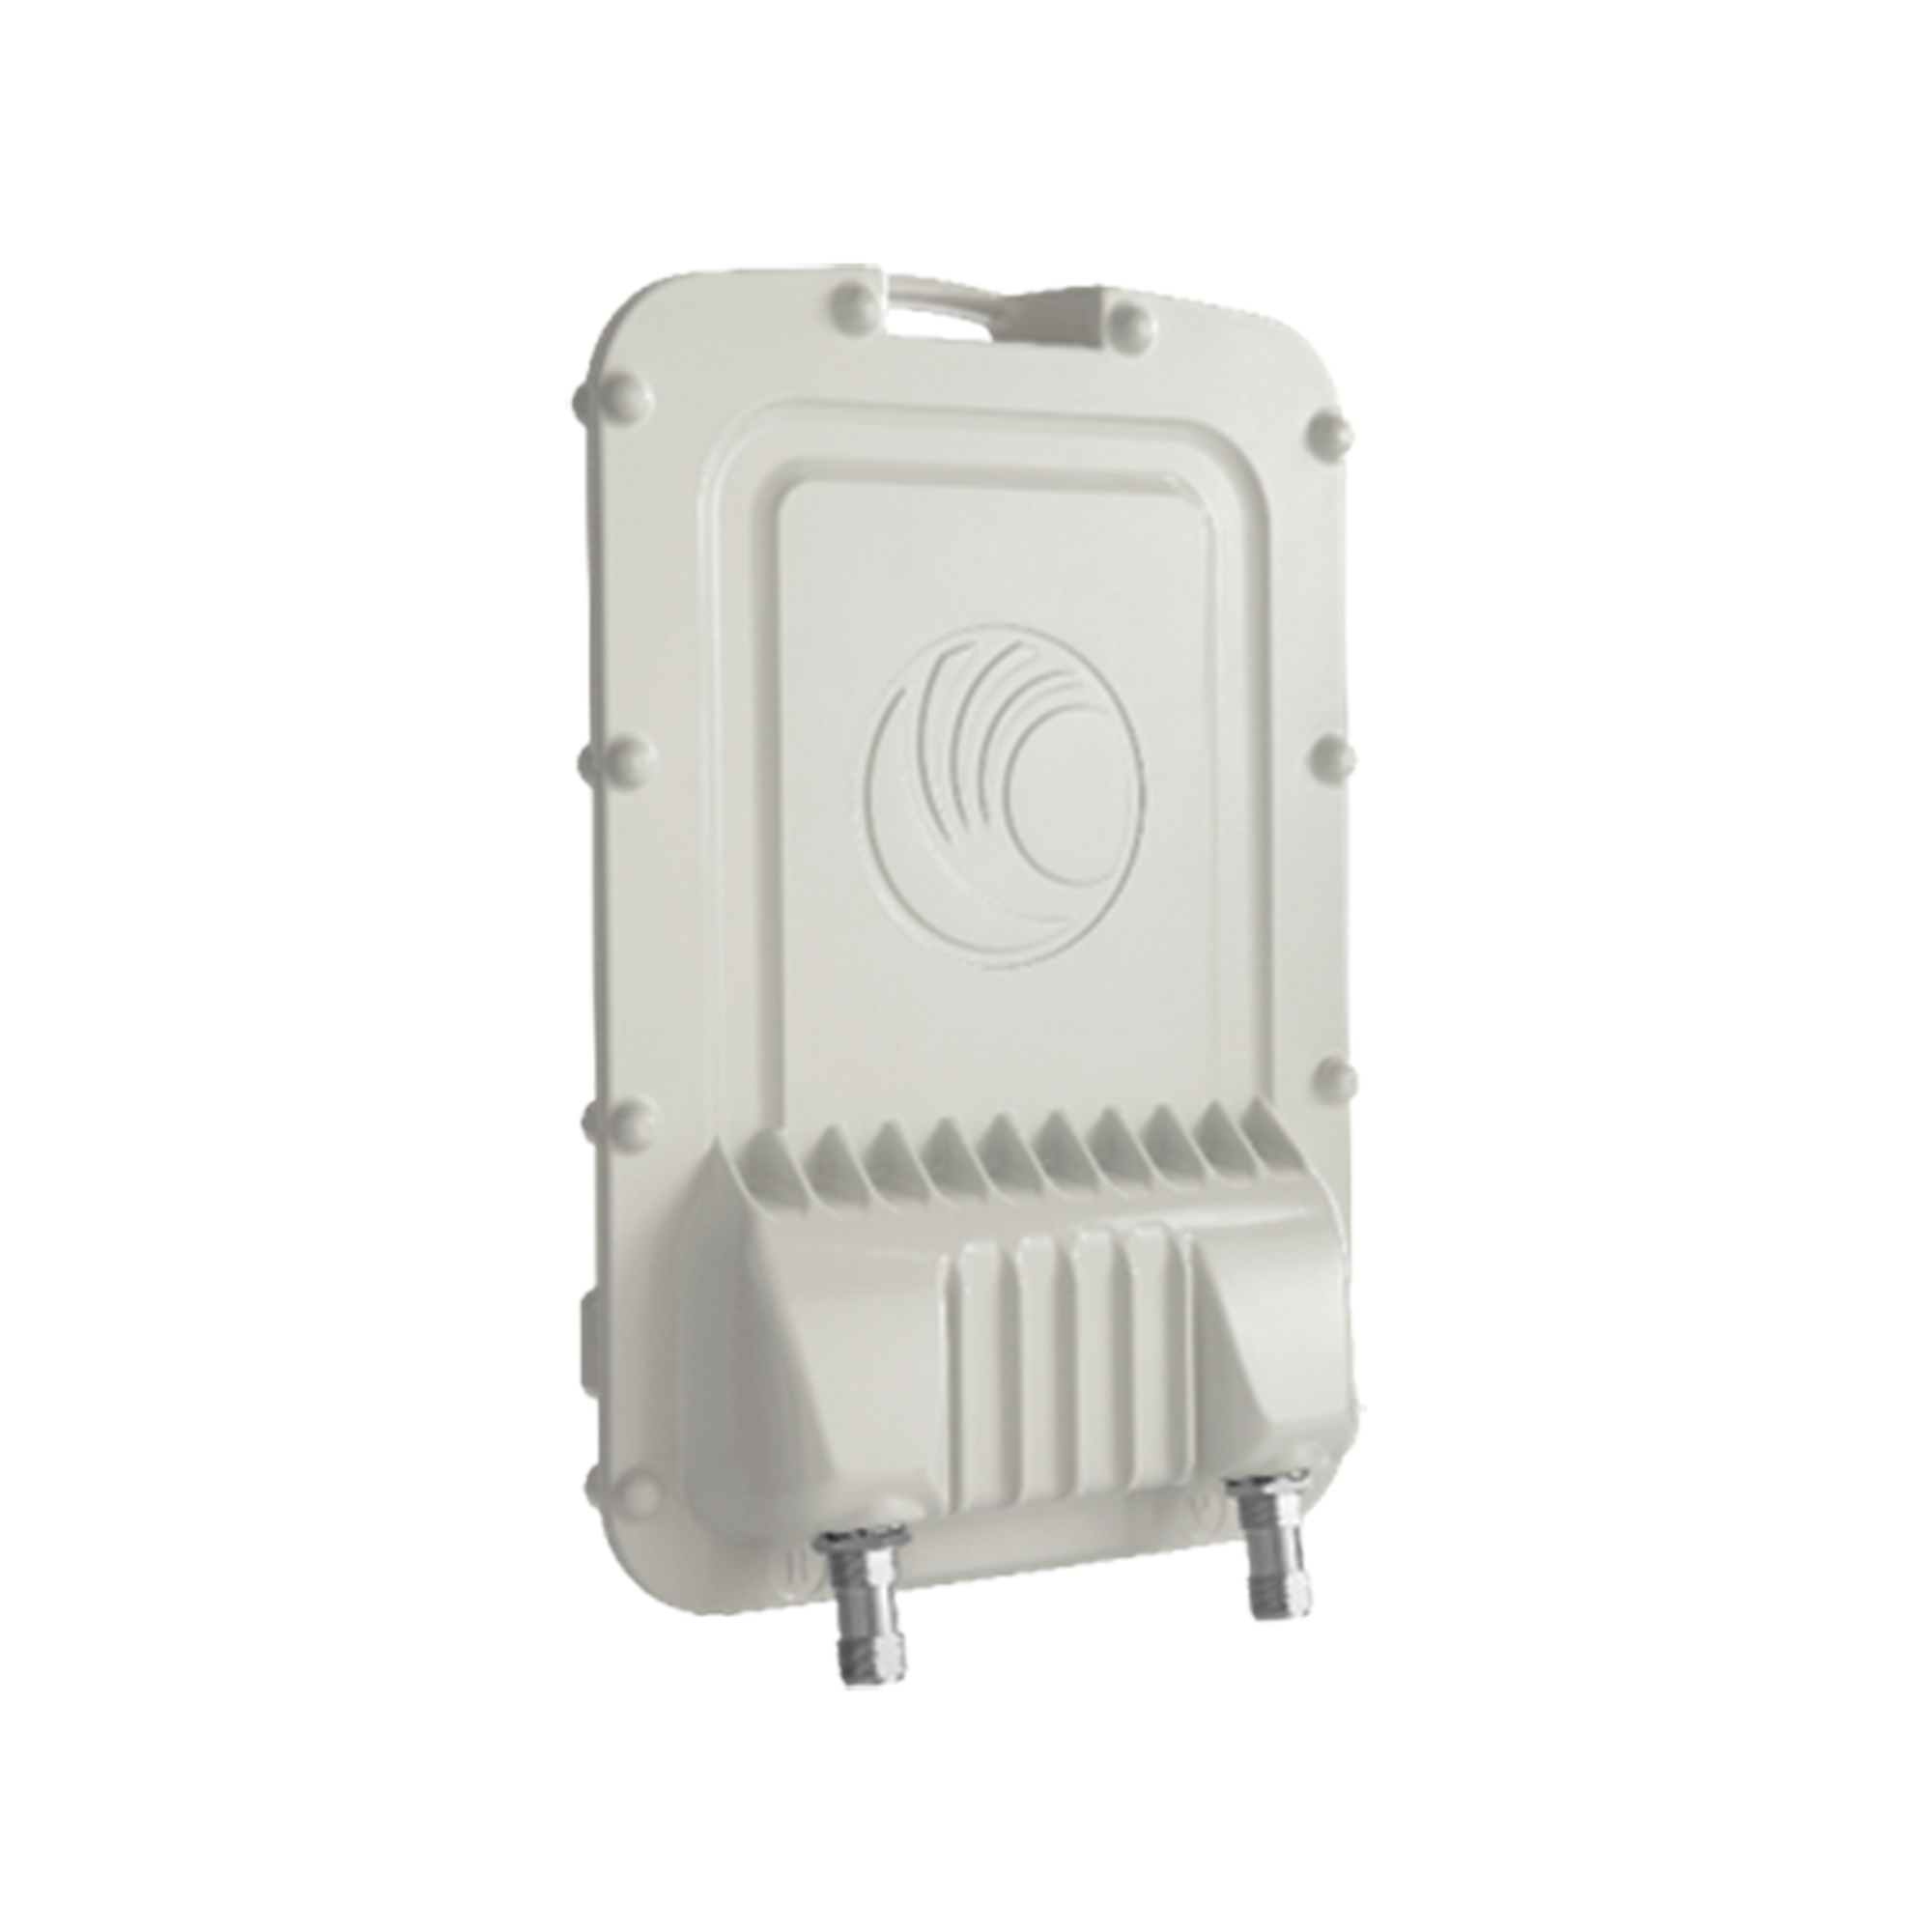 Backhaul radio conecterizado, 4.9-6.05 GHz PTP/HCMP/ 450 Mbps Reales (C050067H007A)